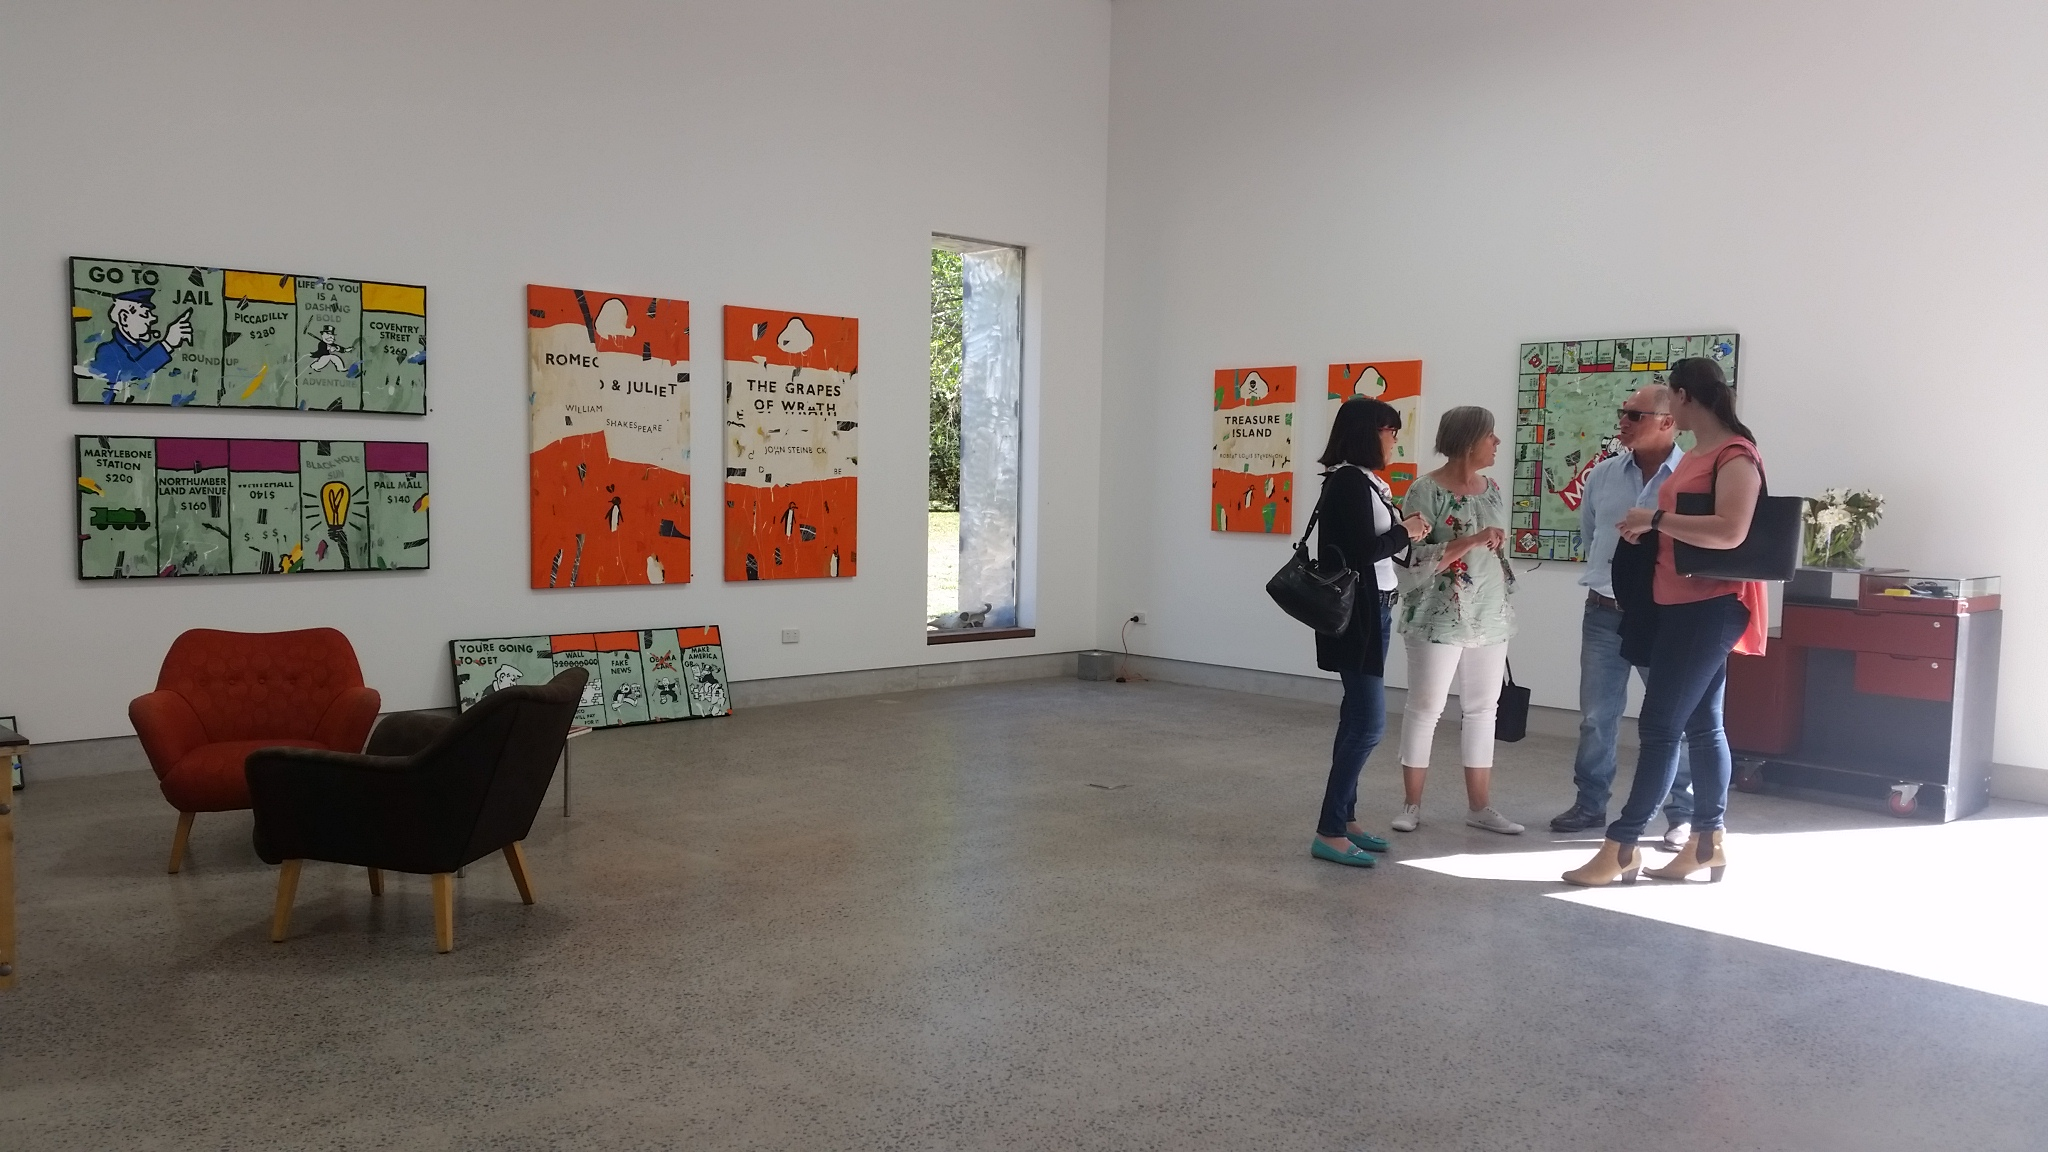 Inside the new gallery space